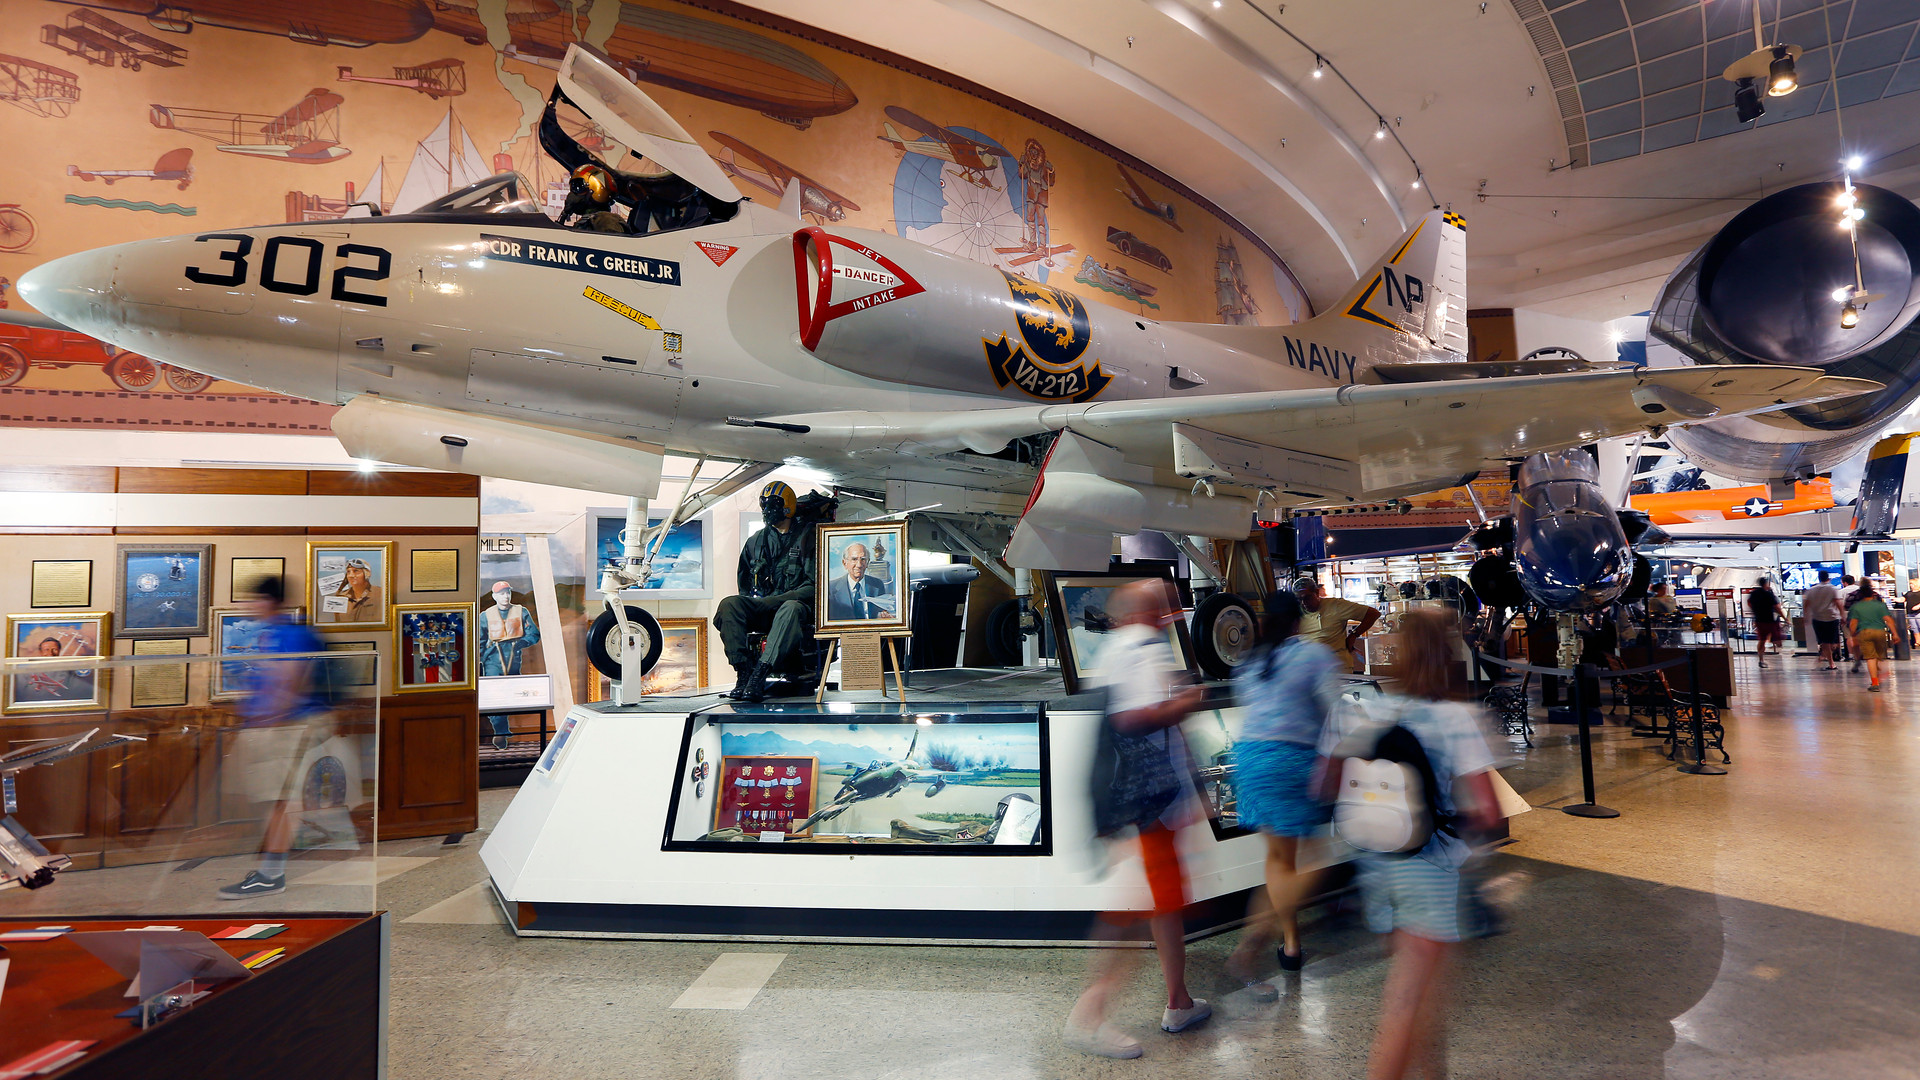 Air_and_Space_Museum_177 (2).jpg